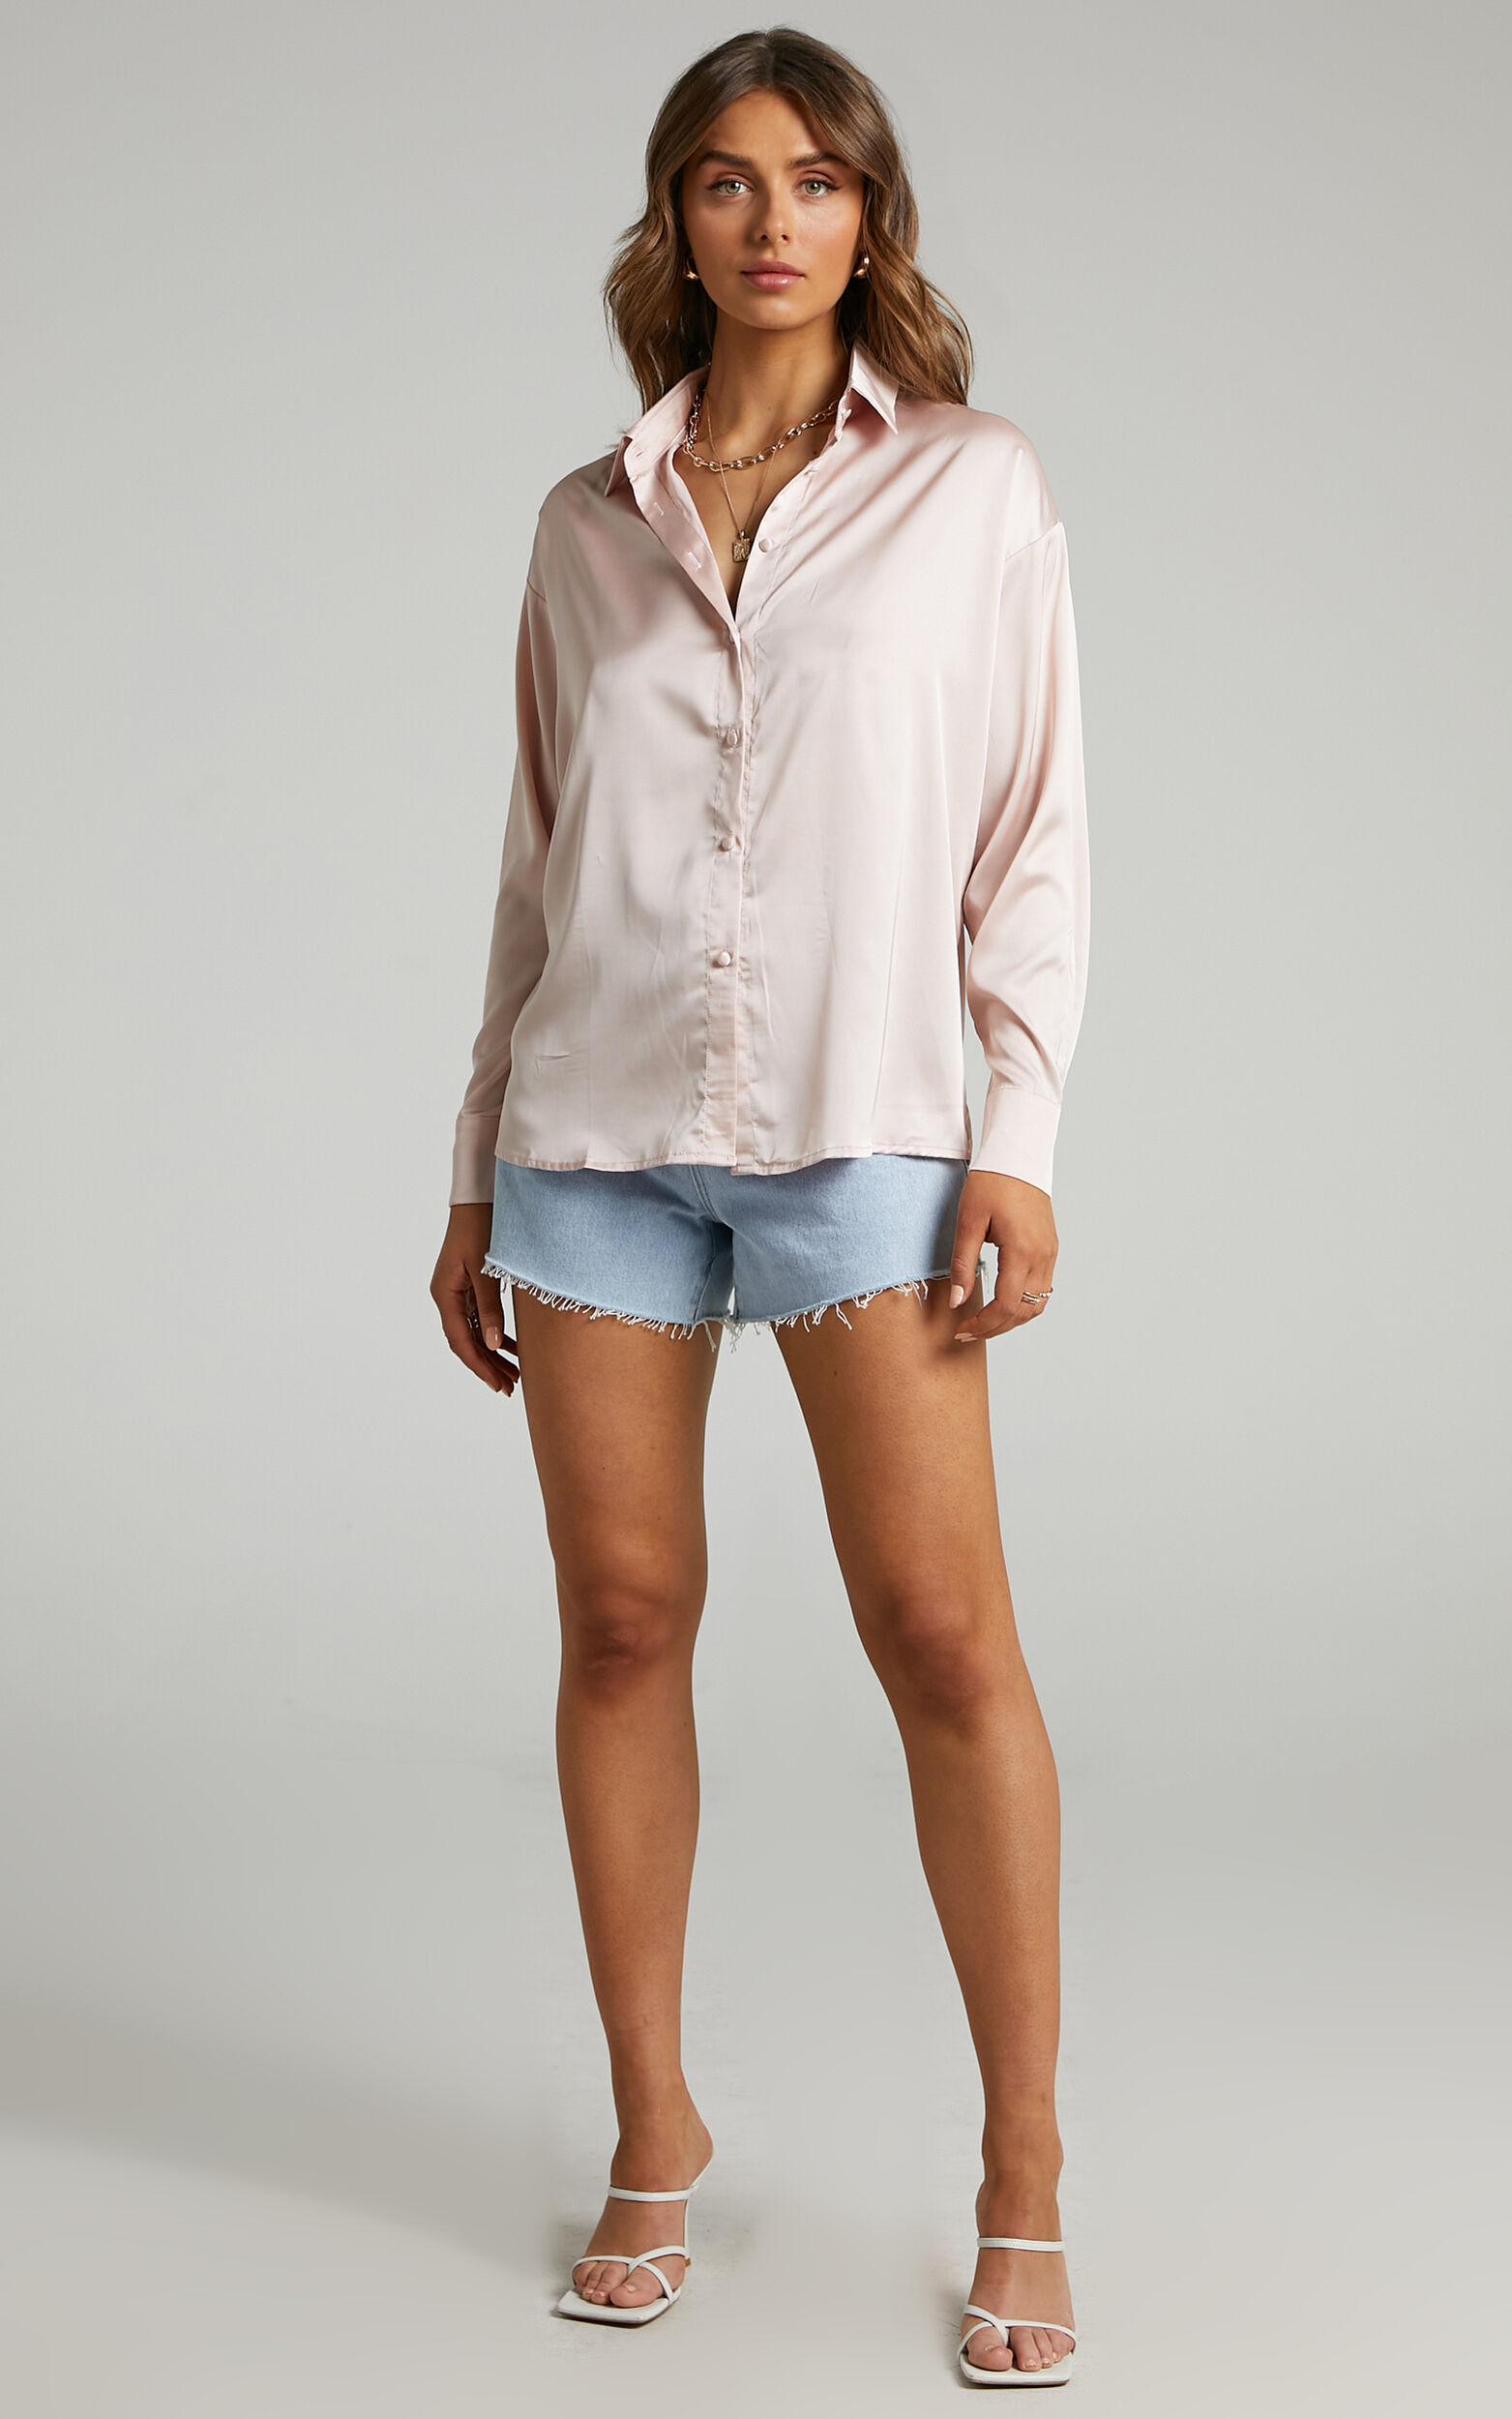 Blaze Oversized relaxed Shirt in Nude Pink - 06, NEU2, super-hi-res image number null